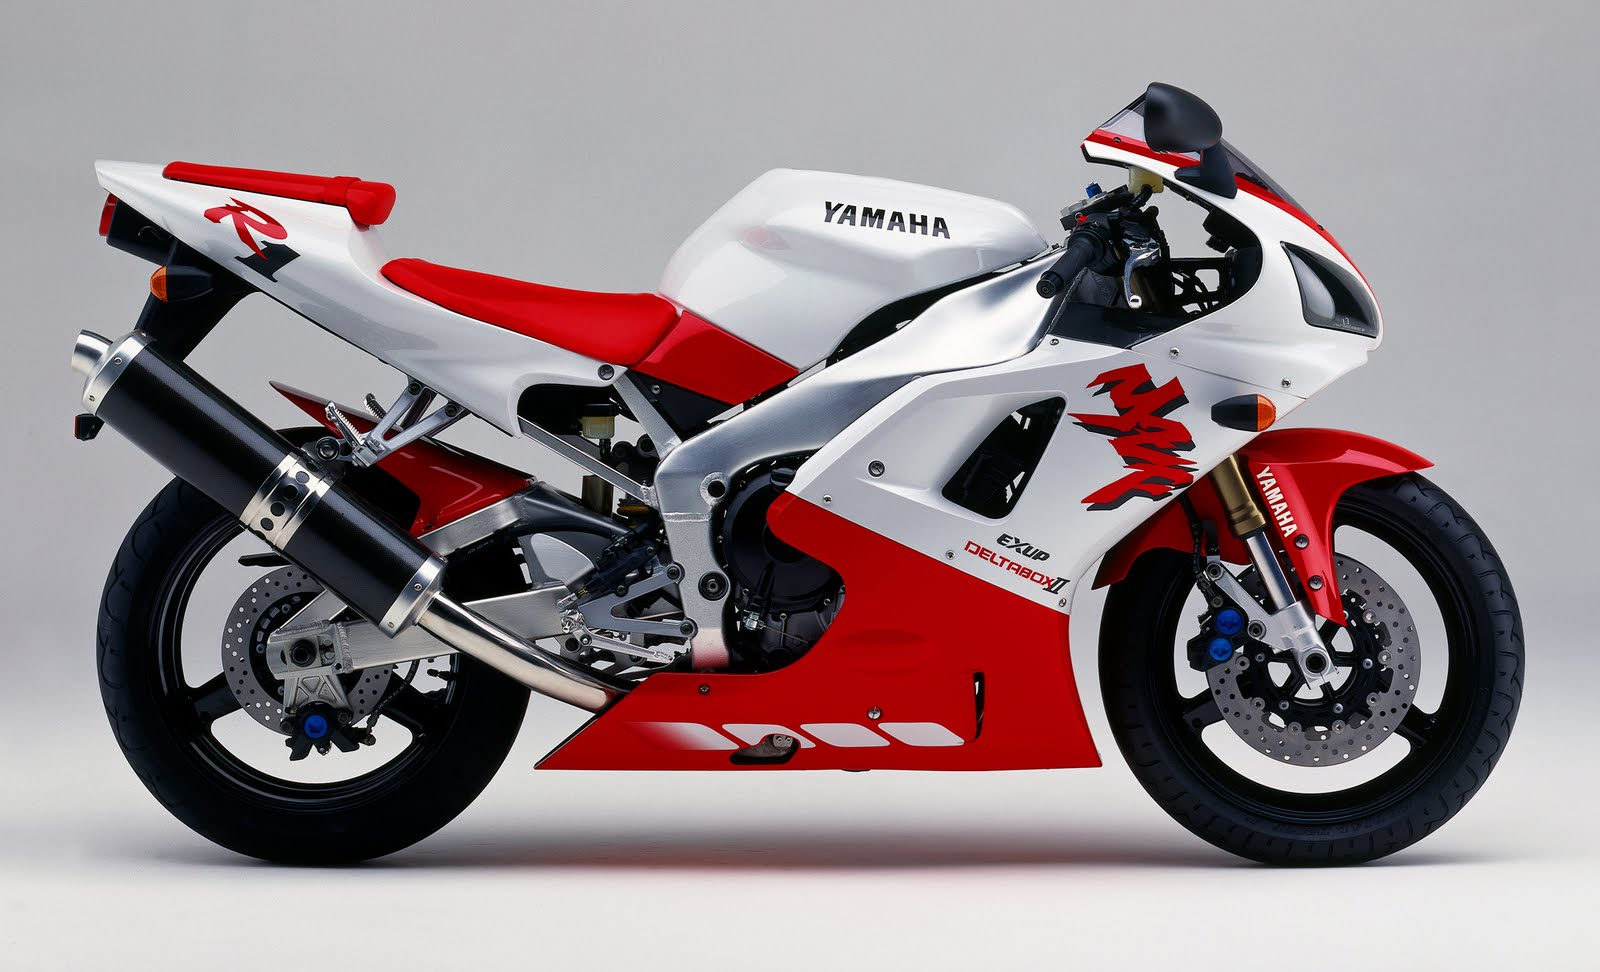 Will Yamahas 2015 R1 Be As Radical For Its Time As The